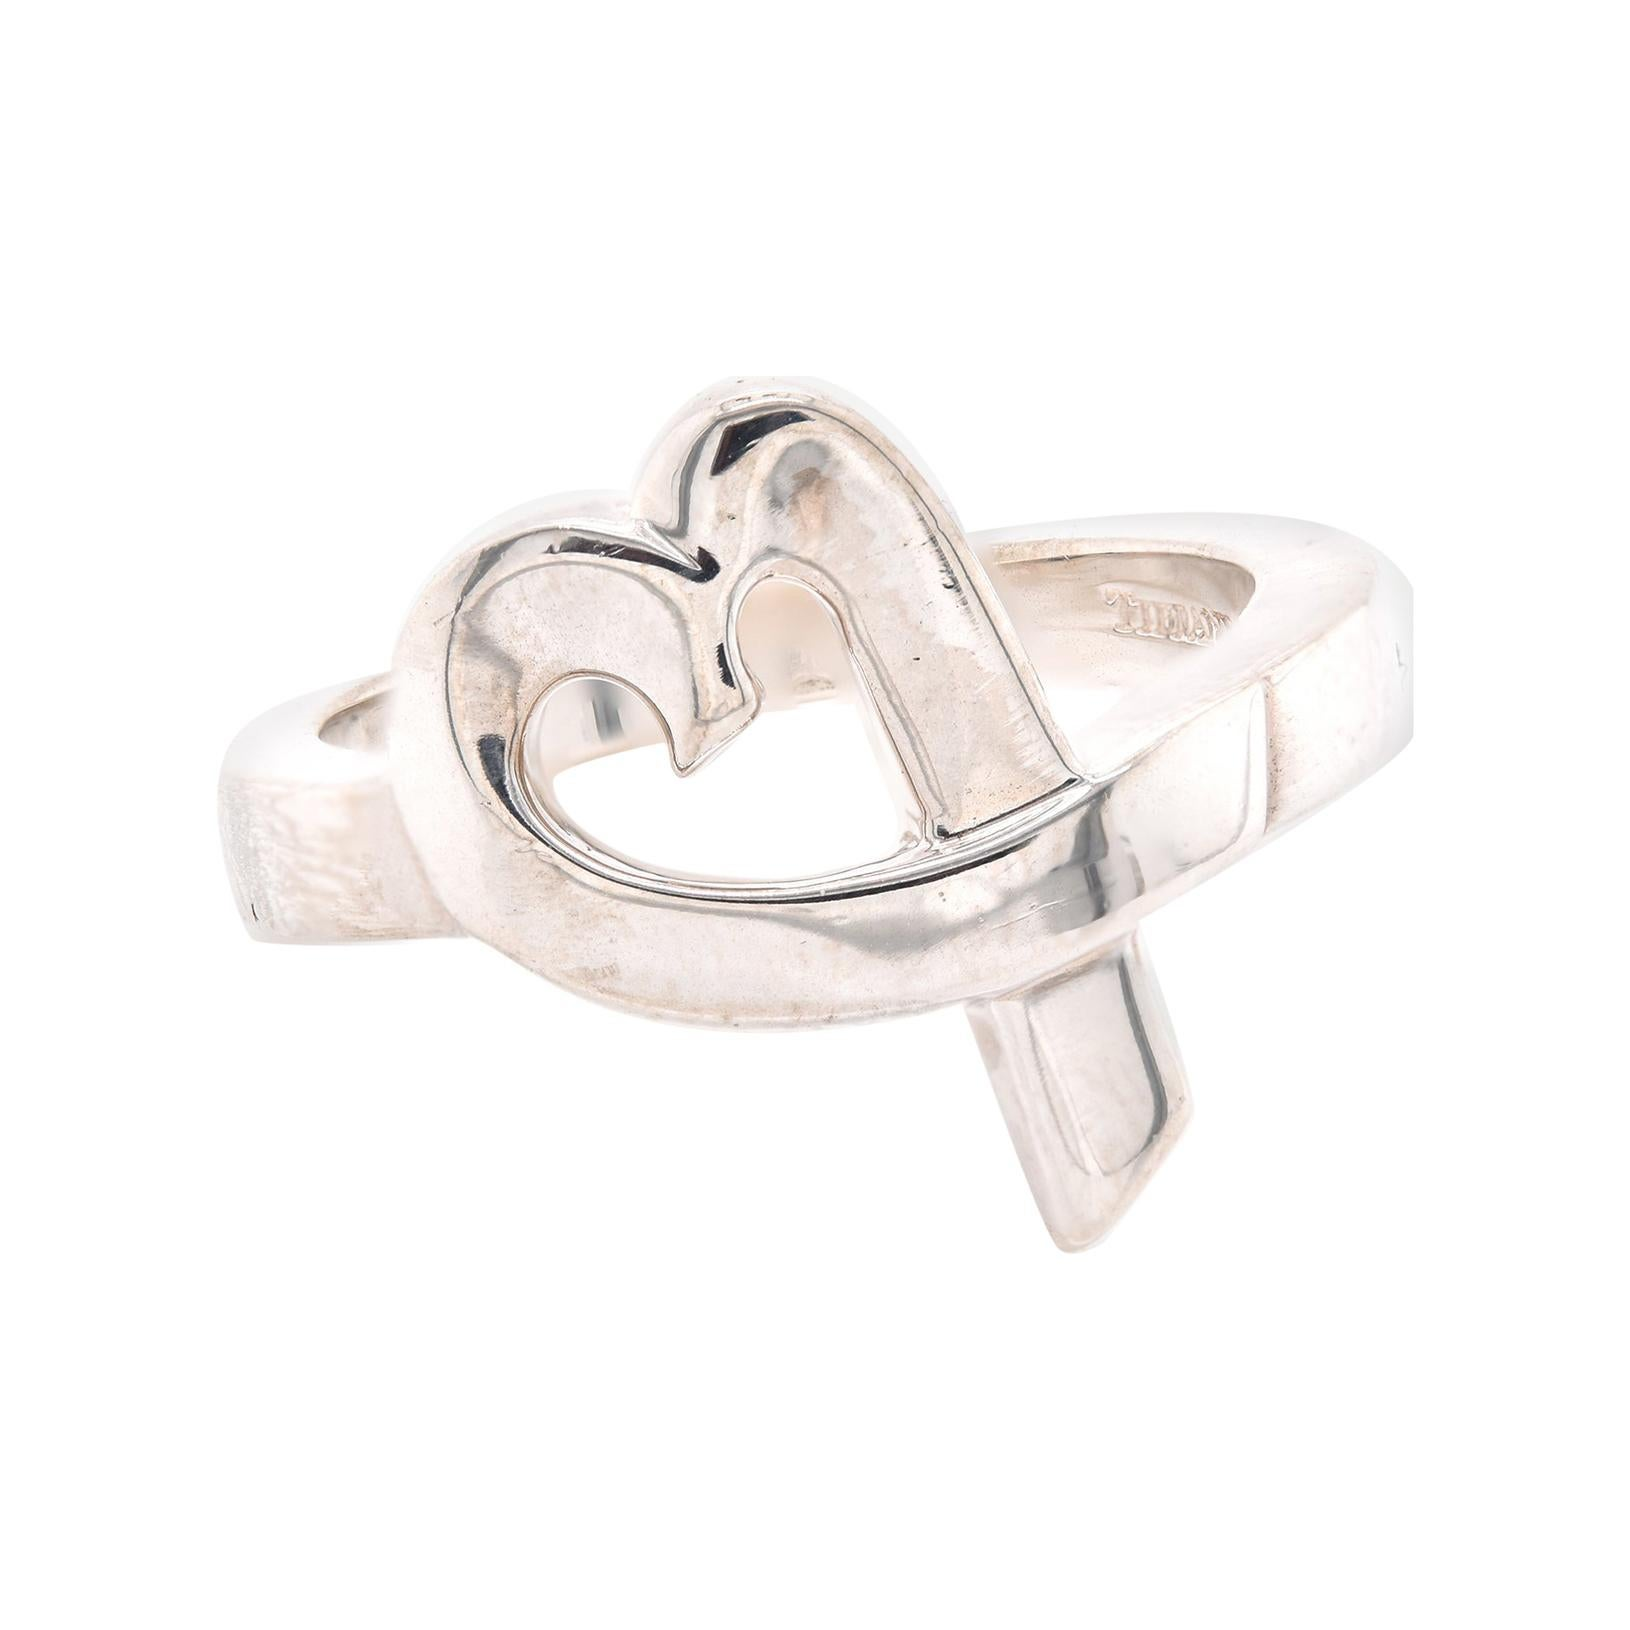 Tiffany & Co. Paloma Picasso Sterling Silver Open Heart Ring